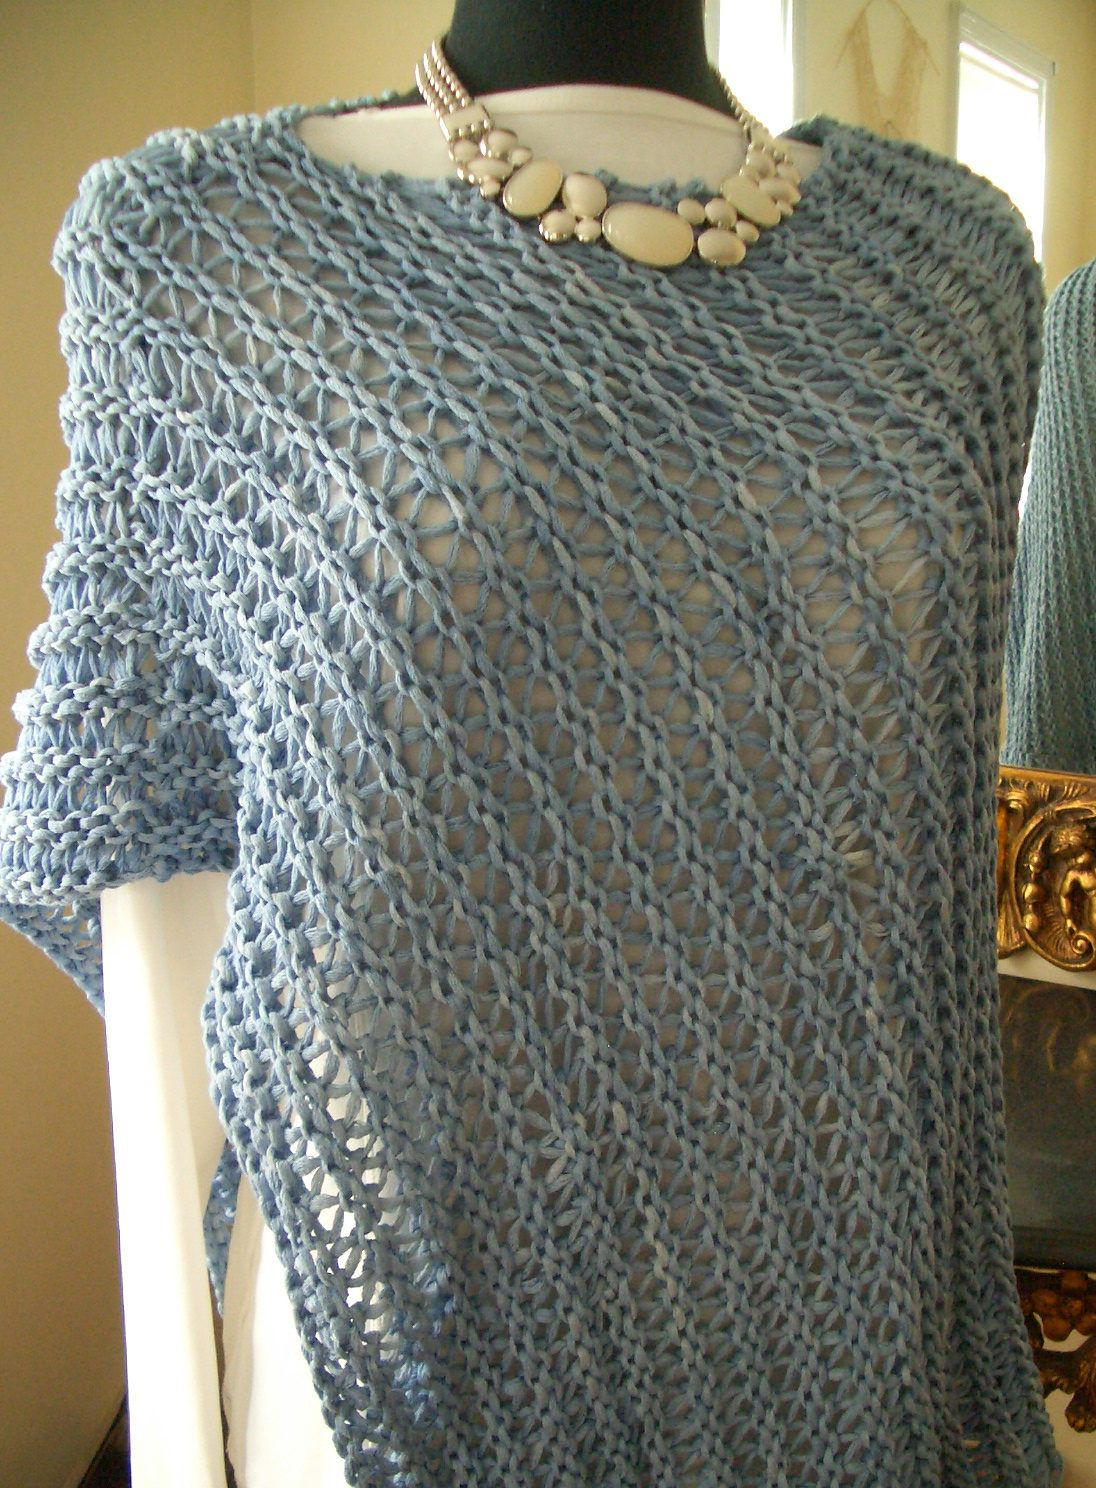 Free knitting pattern for easy 4 row repeat ridged wrap poncho free knitting pattern for easy 4 row repeat ridged wrap poncho easy poncho features bankloansurffo Gallery